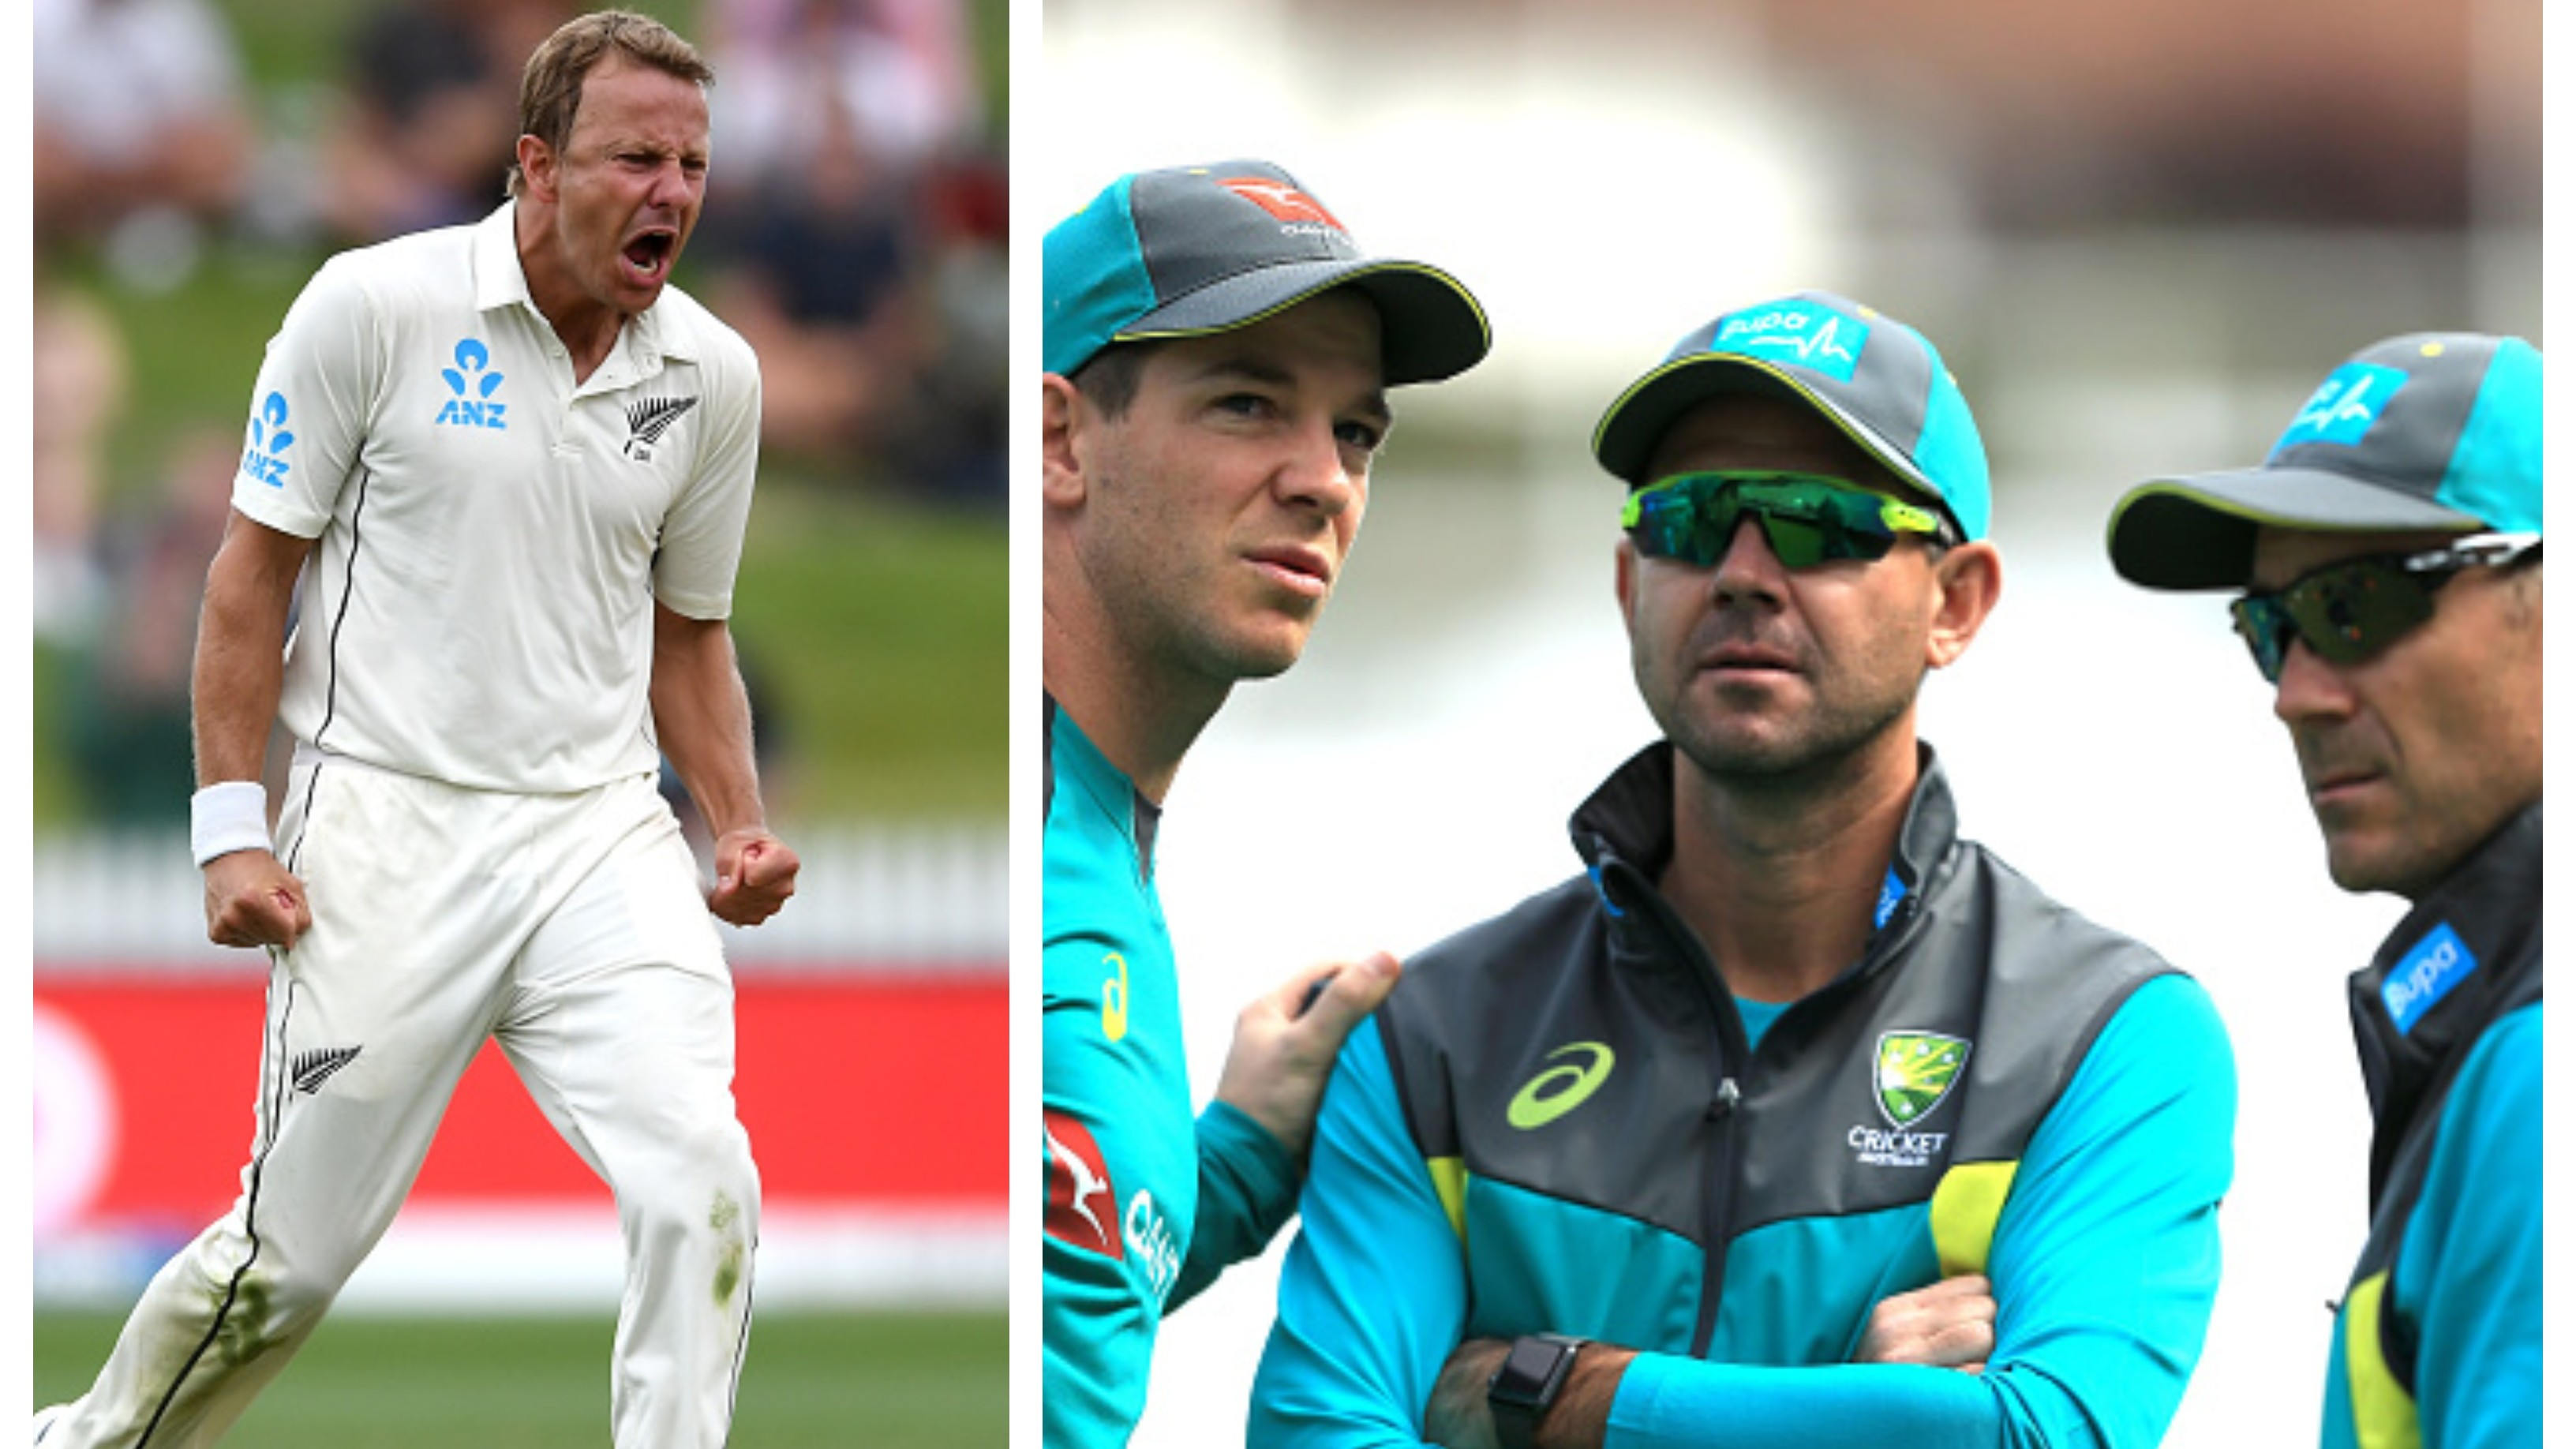 AUS v NZ 2019-20: Ponting warns Australia of Wagner's threat before the Test series